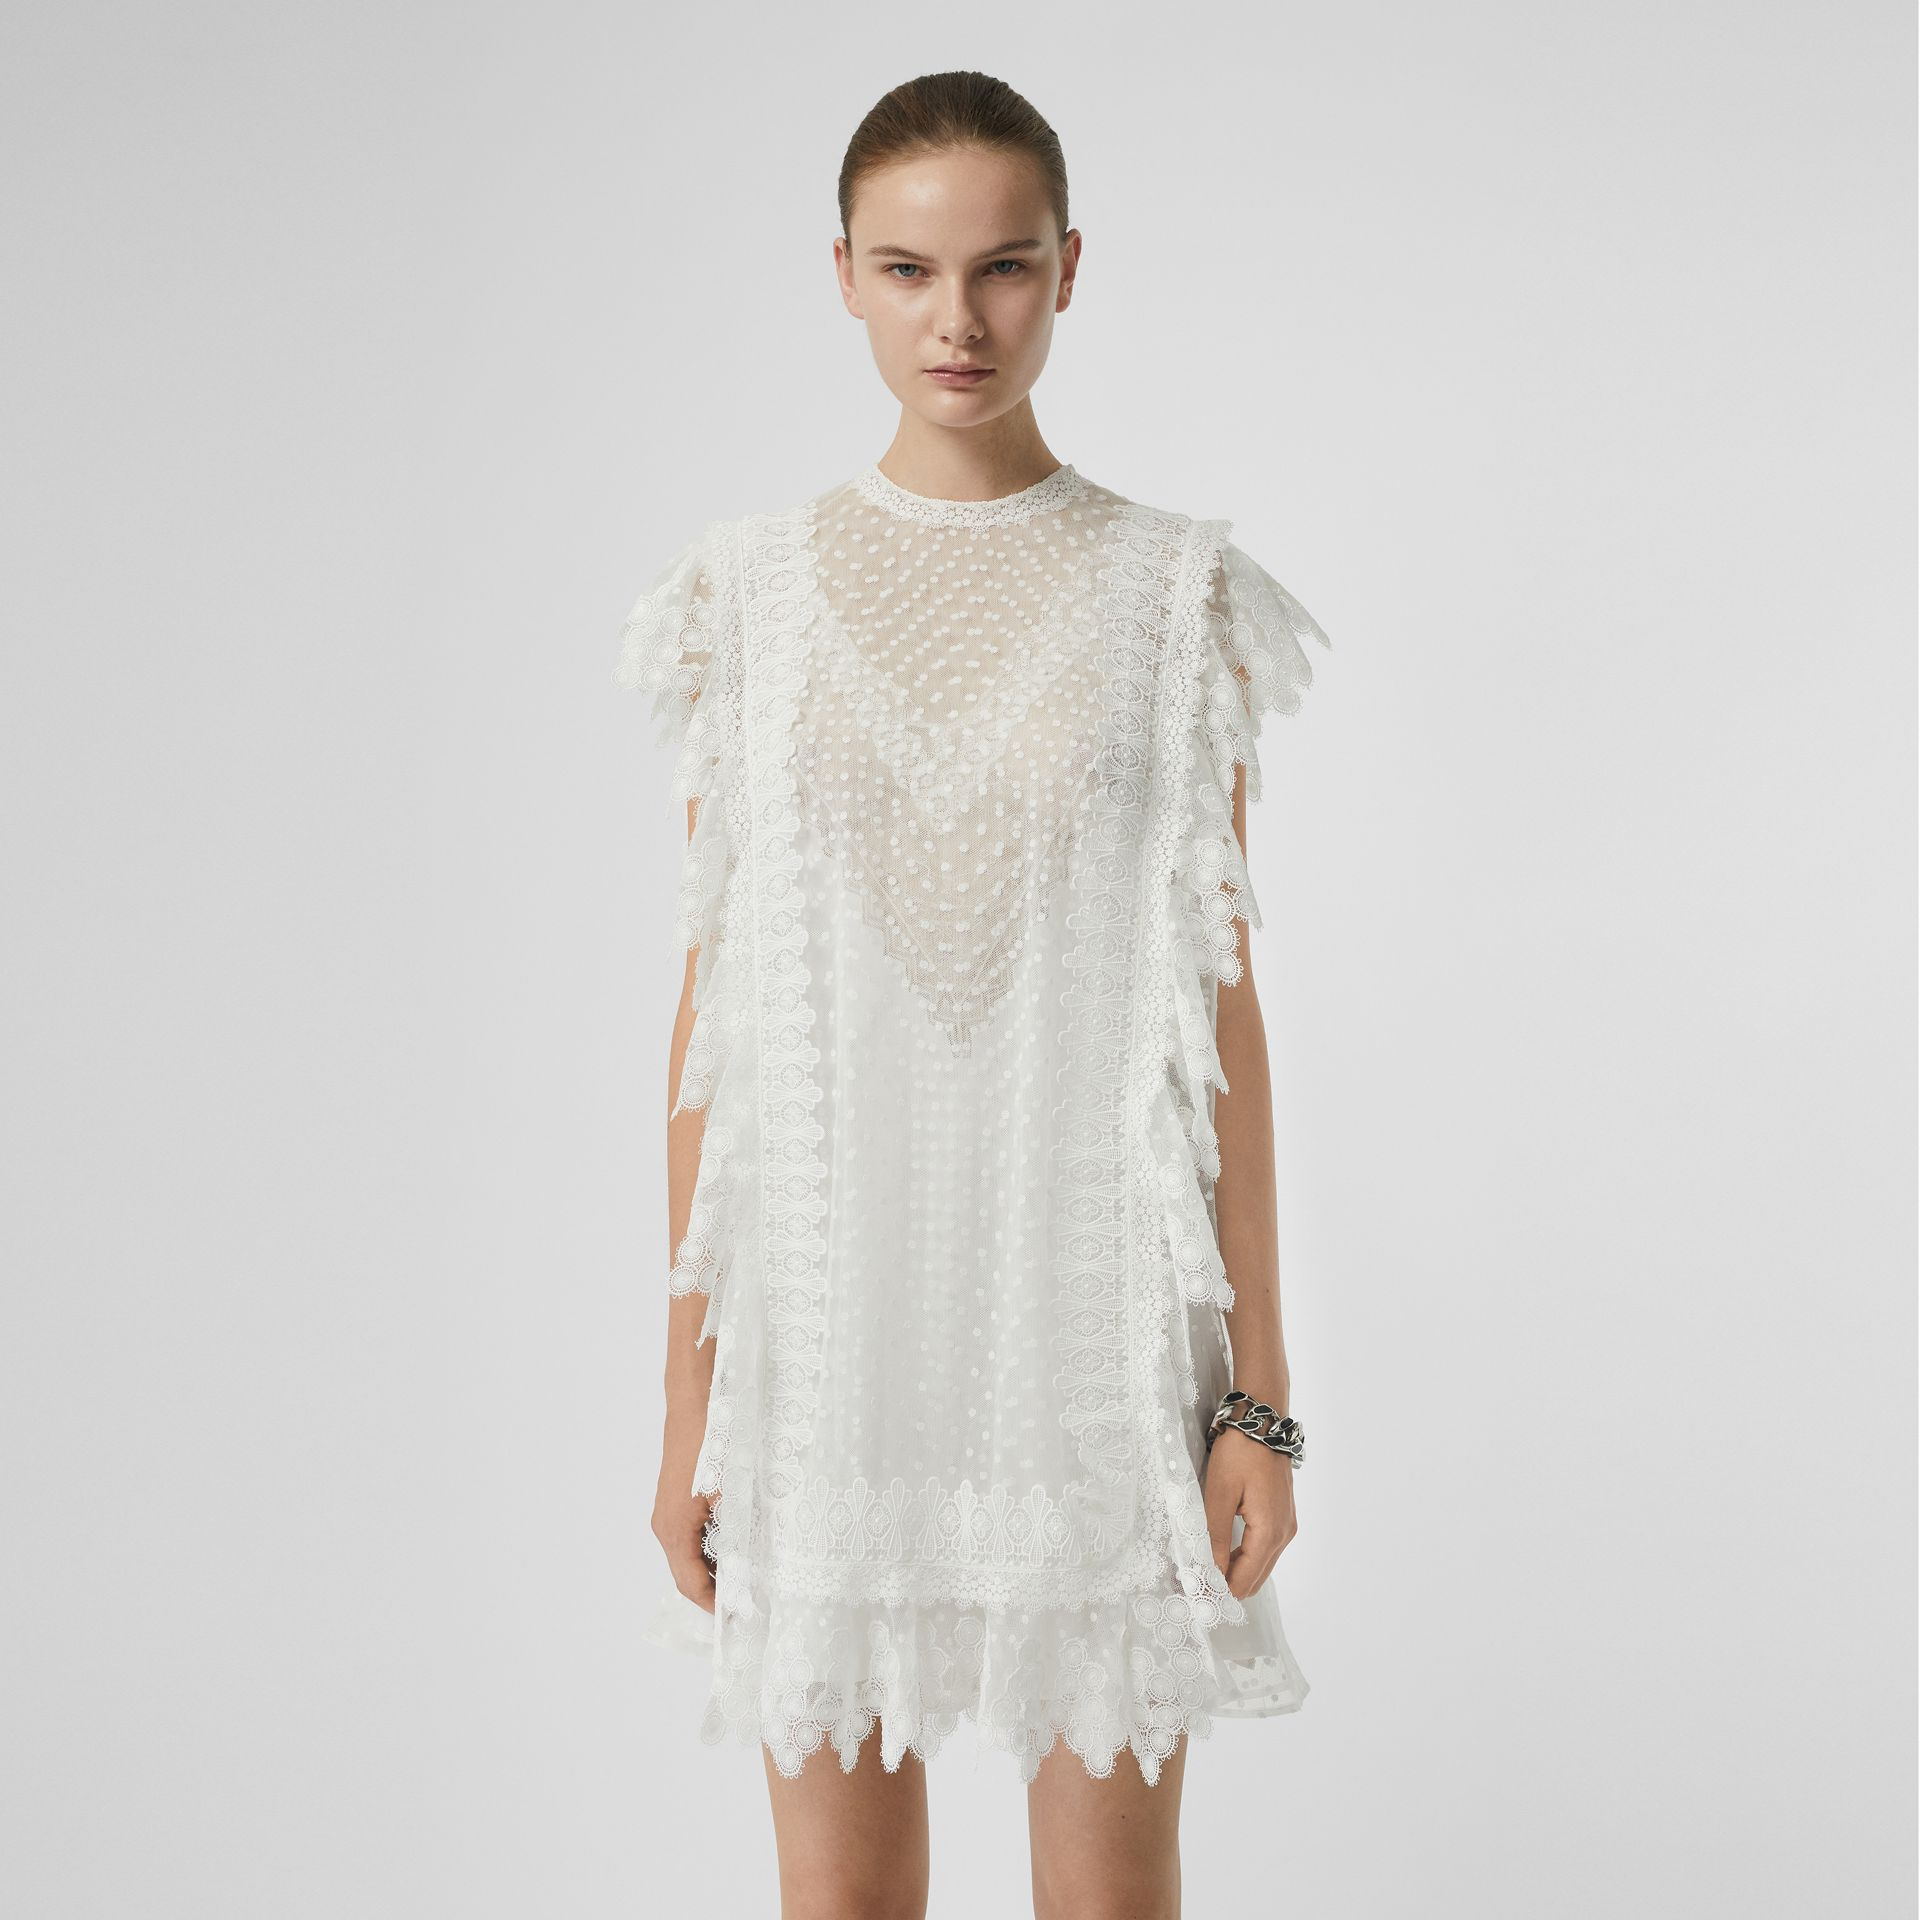 Scalloped Lace and Polka-dot Tulle Dress in White - Women | Burberry - gallery image 4